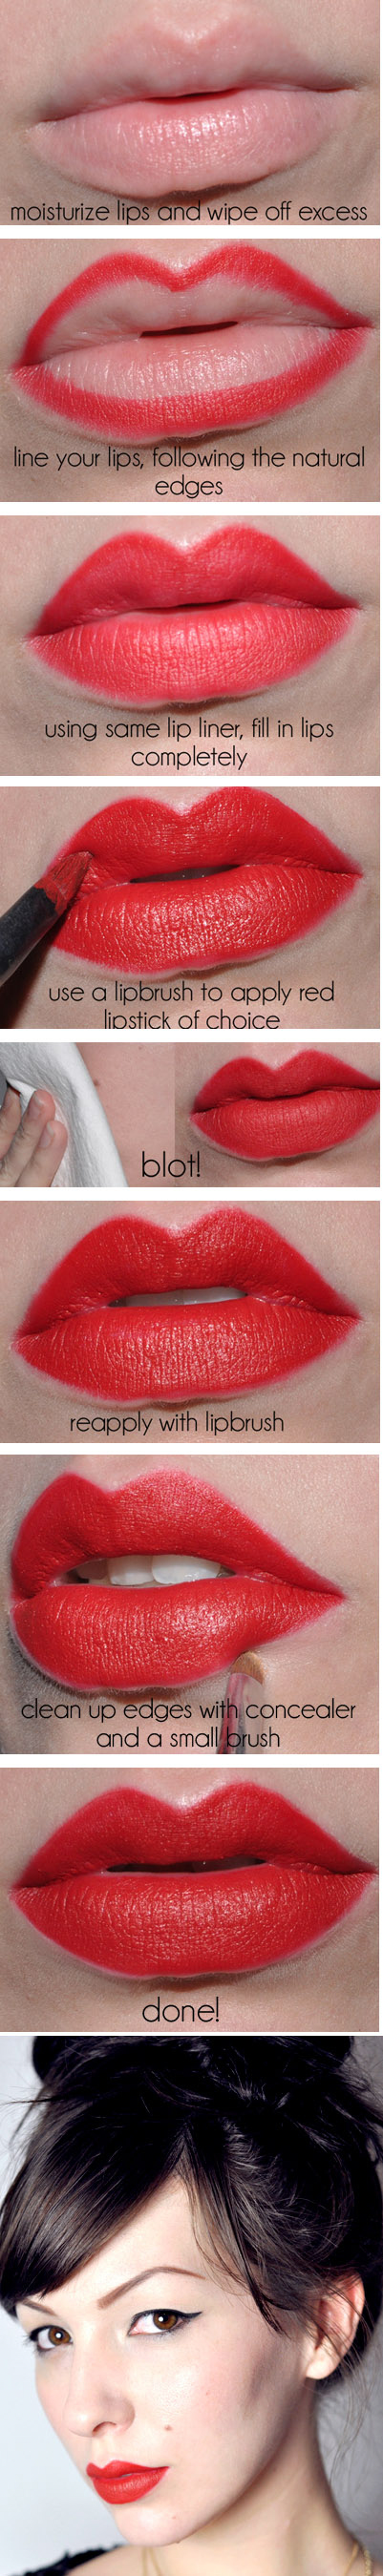 Vintage lips. Makeup Tutorial for Glamorous and Dramatic Holiday Looks